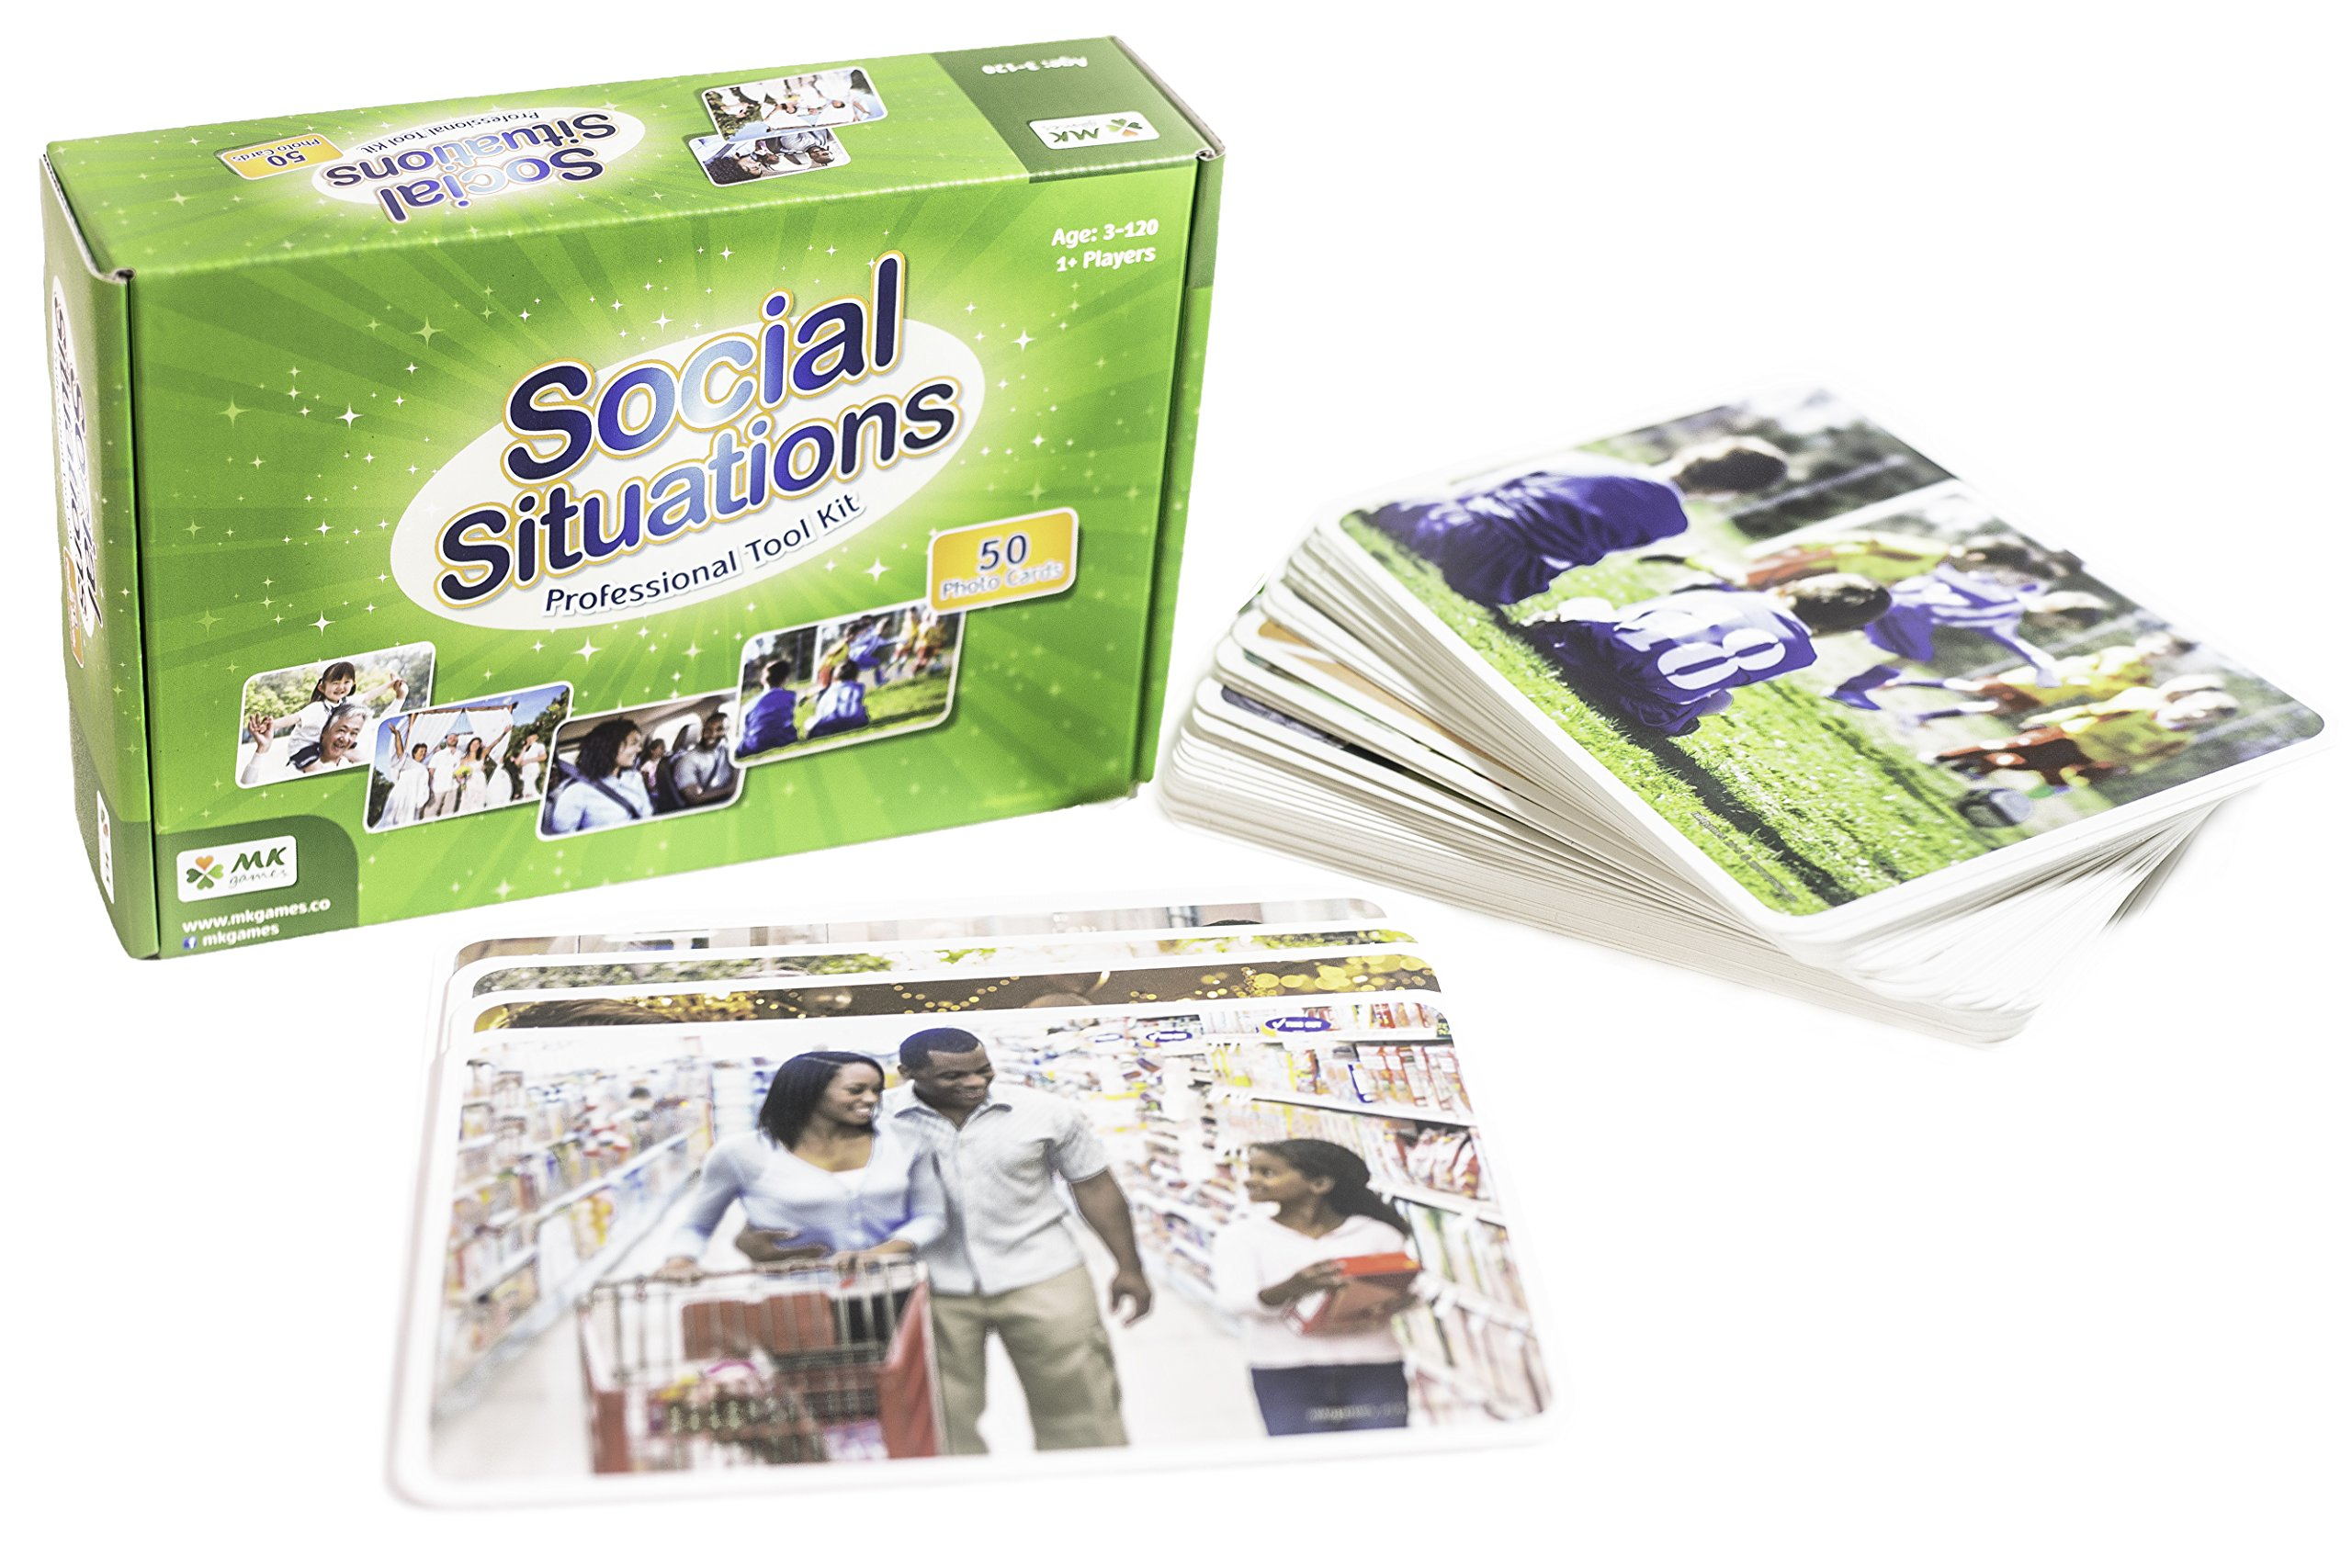 MKgames Social situations - 50 Photo Cards, Learning Products, Speech Therapy for Kids and Adults. Encourages Language Development, Communication and Conversation